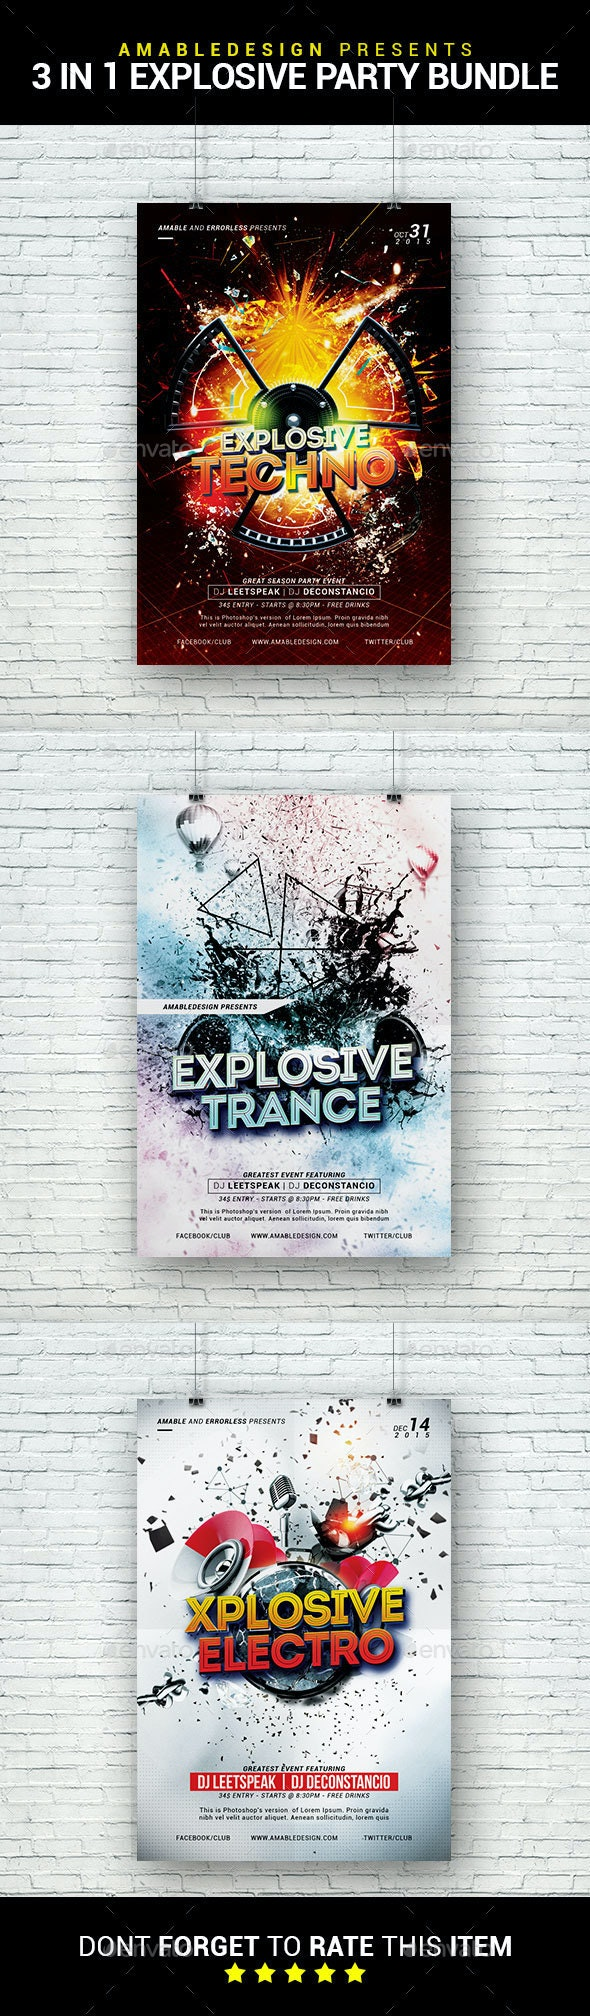 3 in 1 Explosive Party Flyer/Poster Bundle - Clubs & Parties Events